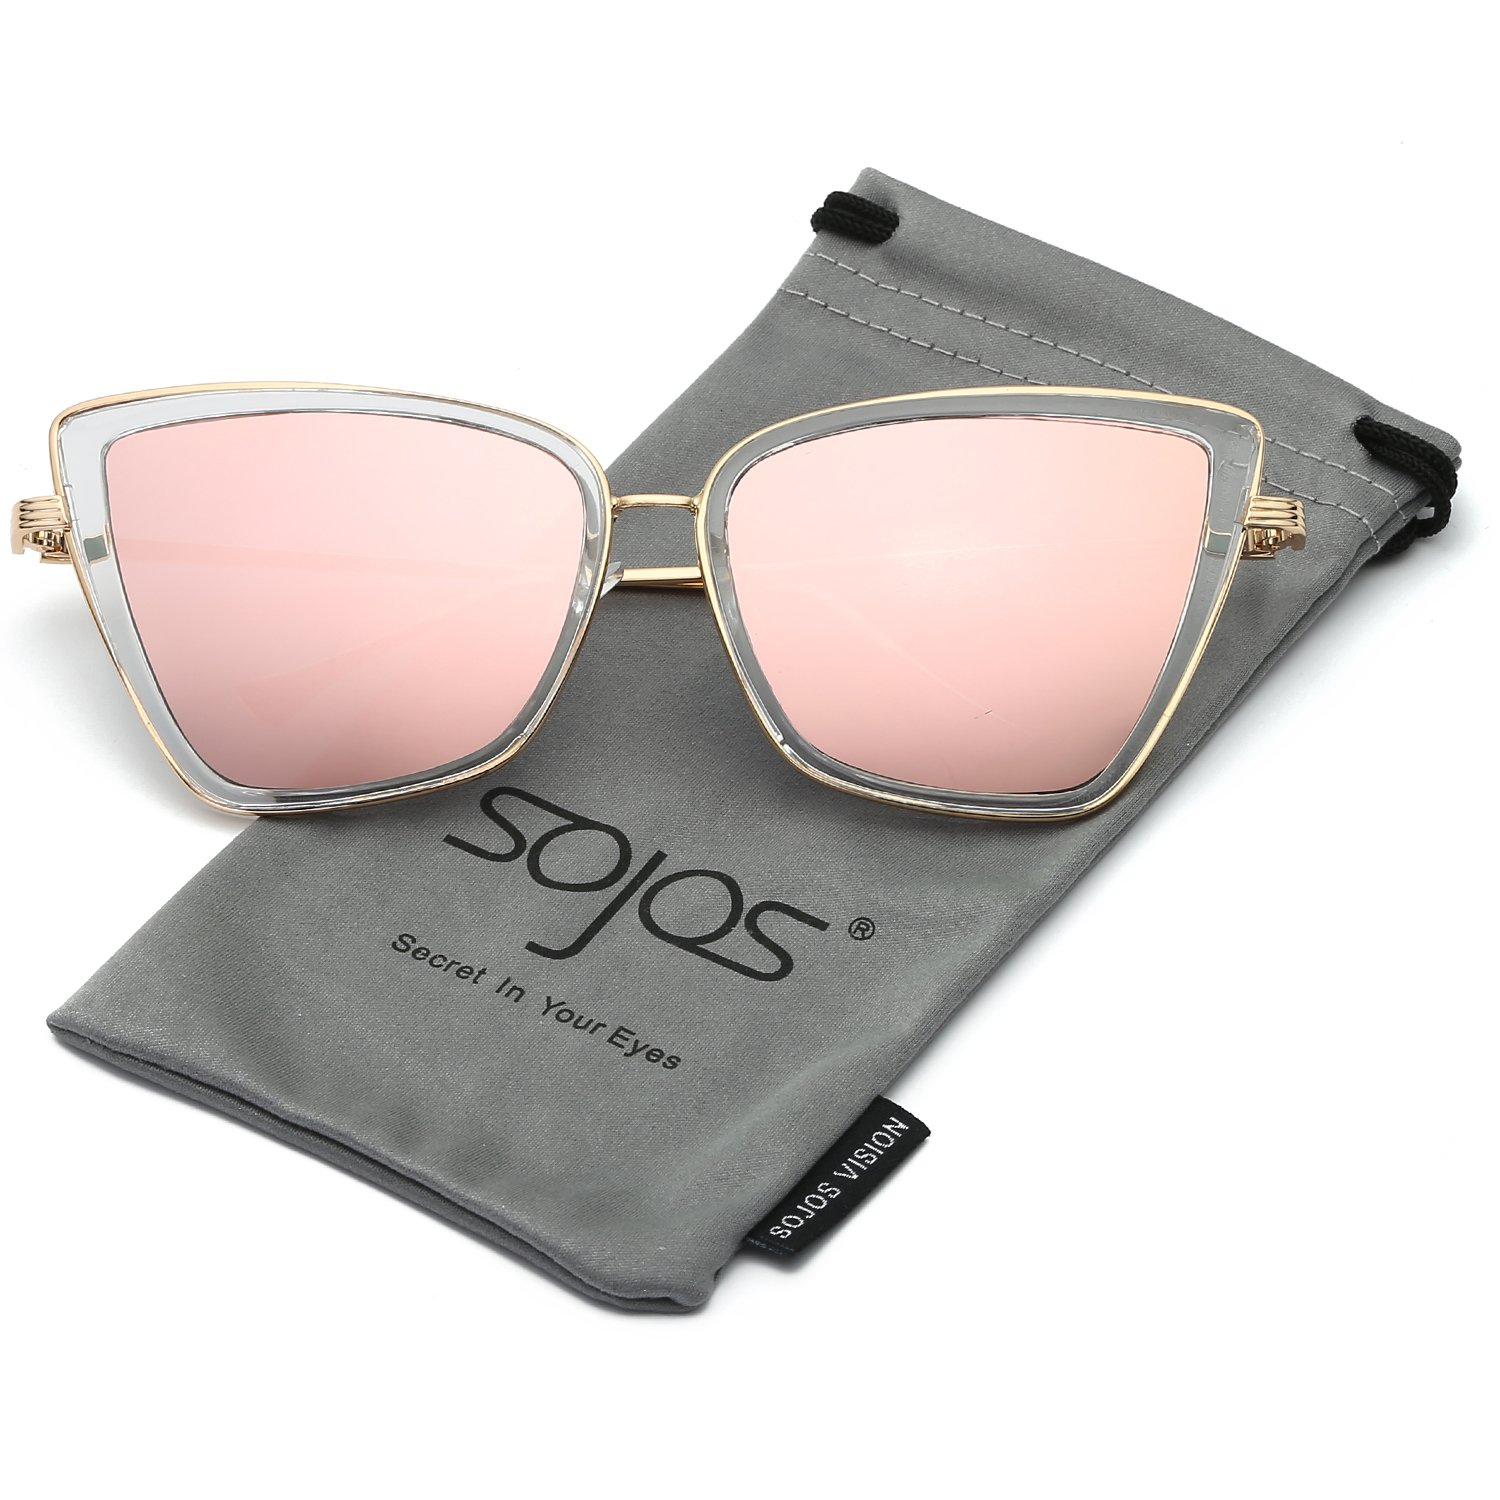 a495b59e09 Mirrored lens. Non-polarized. Lens width  53 millimeters. UV400 PROTECTION  FOR YOUR EYES – SojoS Vision anti-glare lenses can block 100% of both UVA  and UVB ...